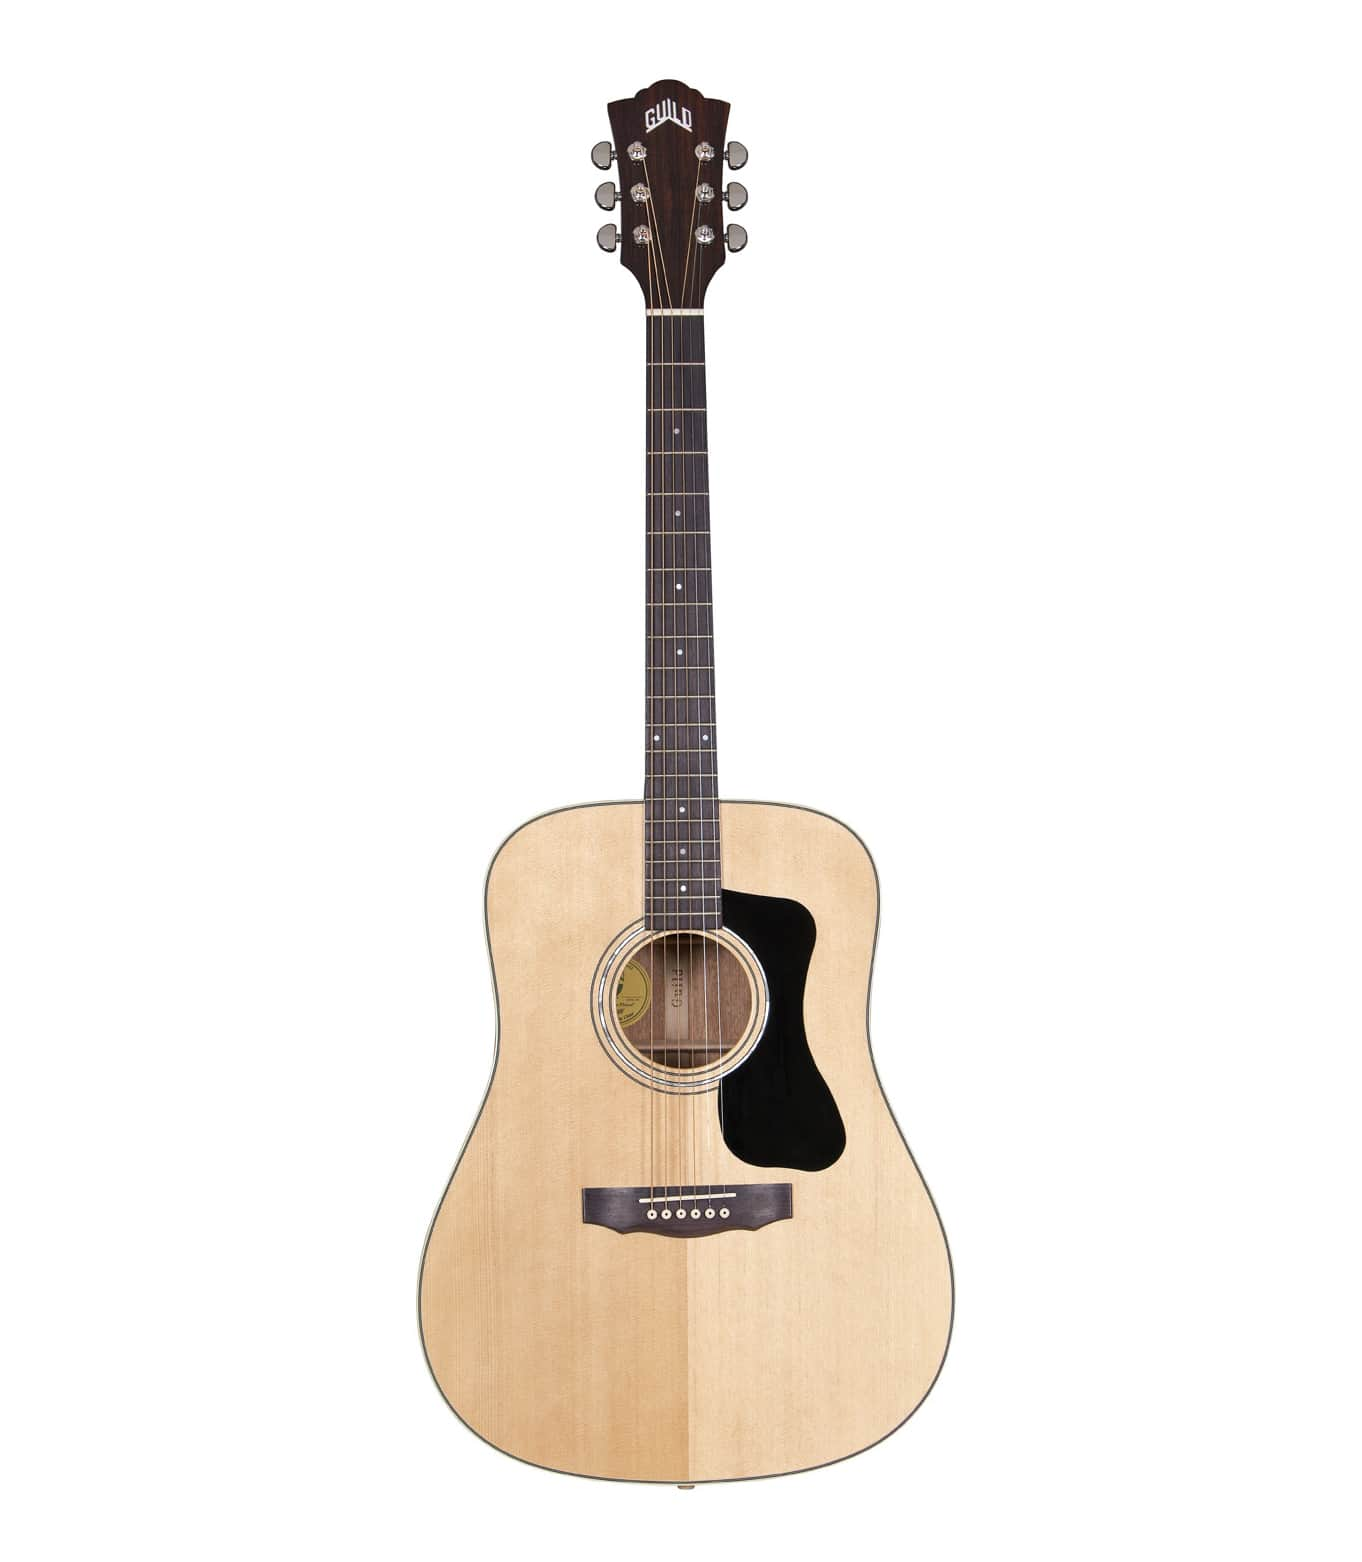 Buy guild - D150N Dreadnought Acoustic Guitar Natural Finish